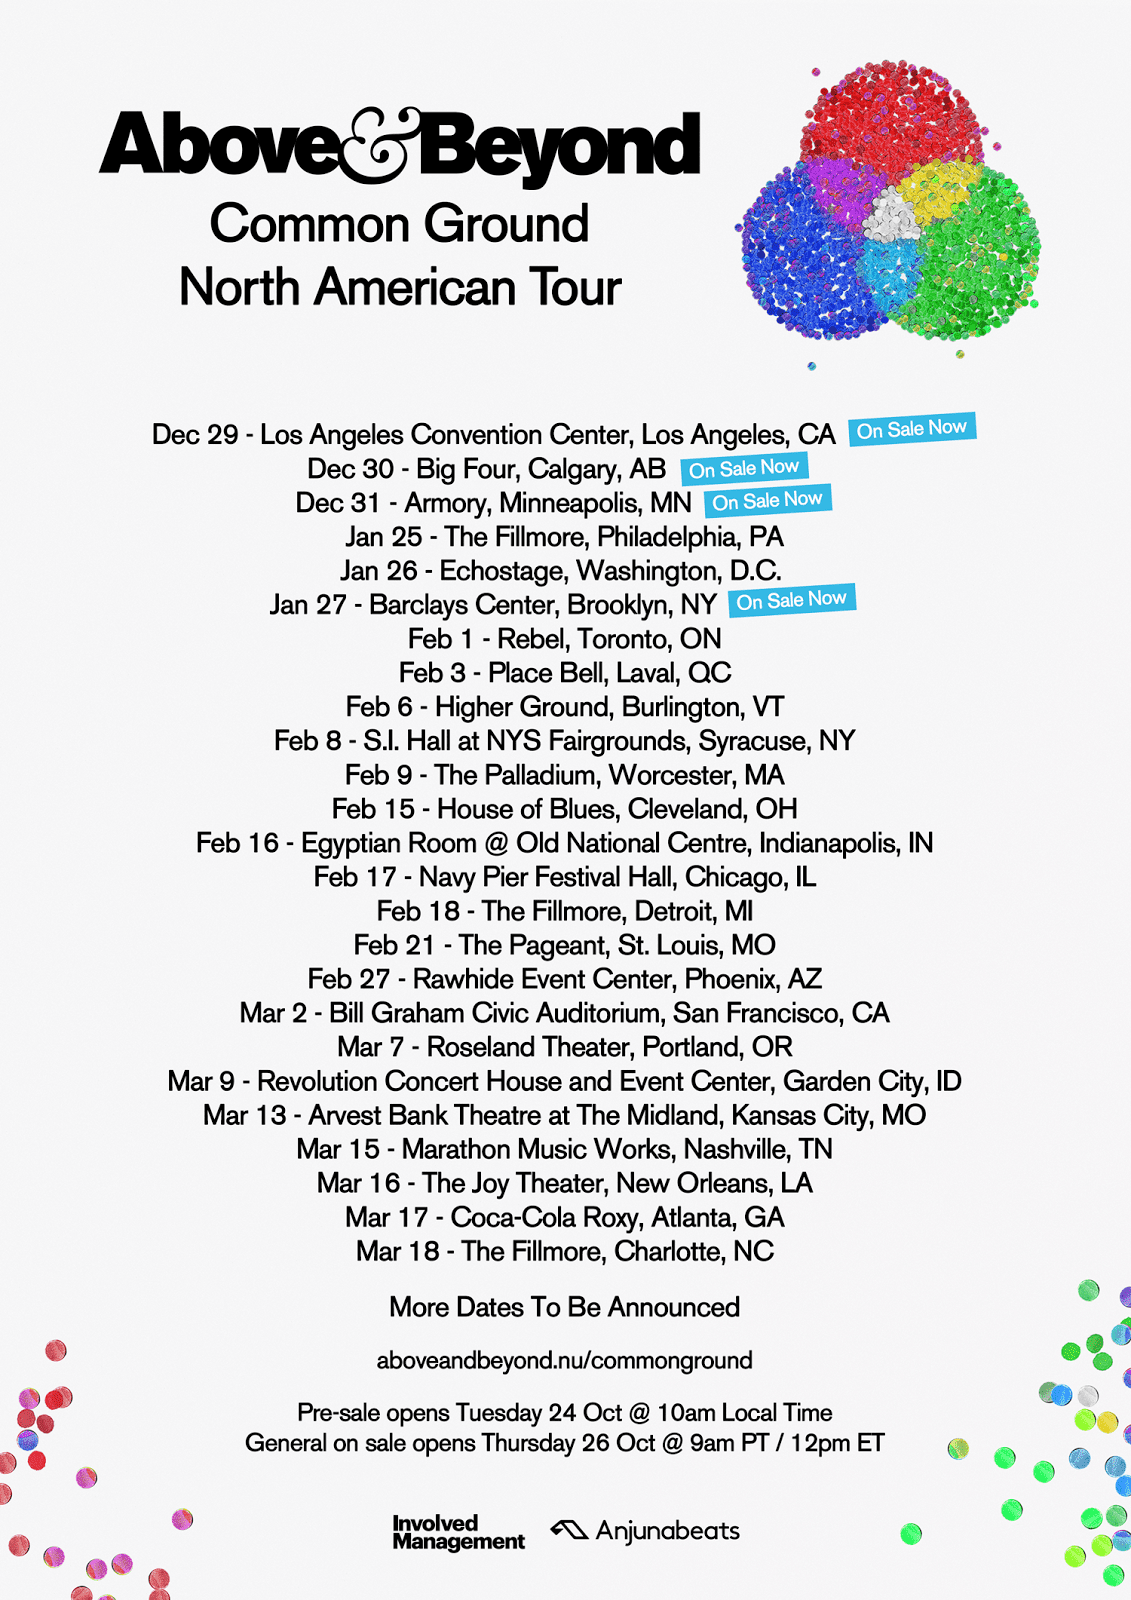 above-beyond-common-ground-tour-dates-flyer_1.png